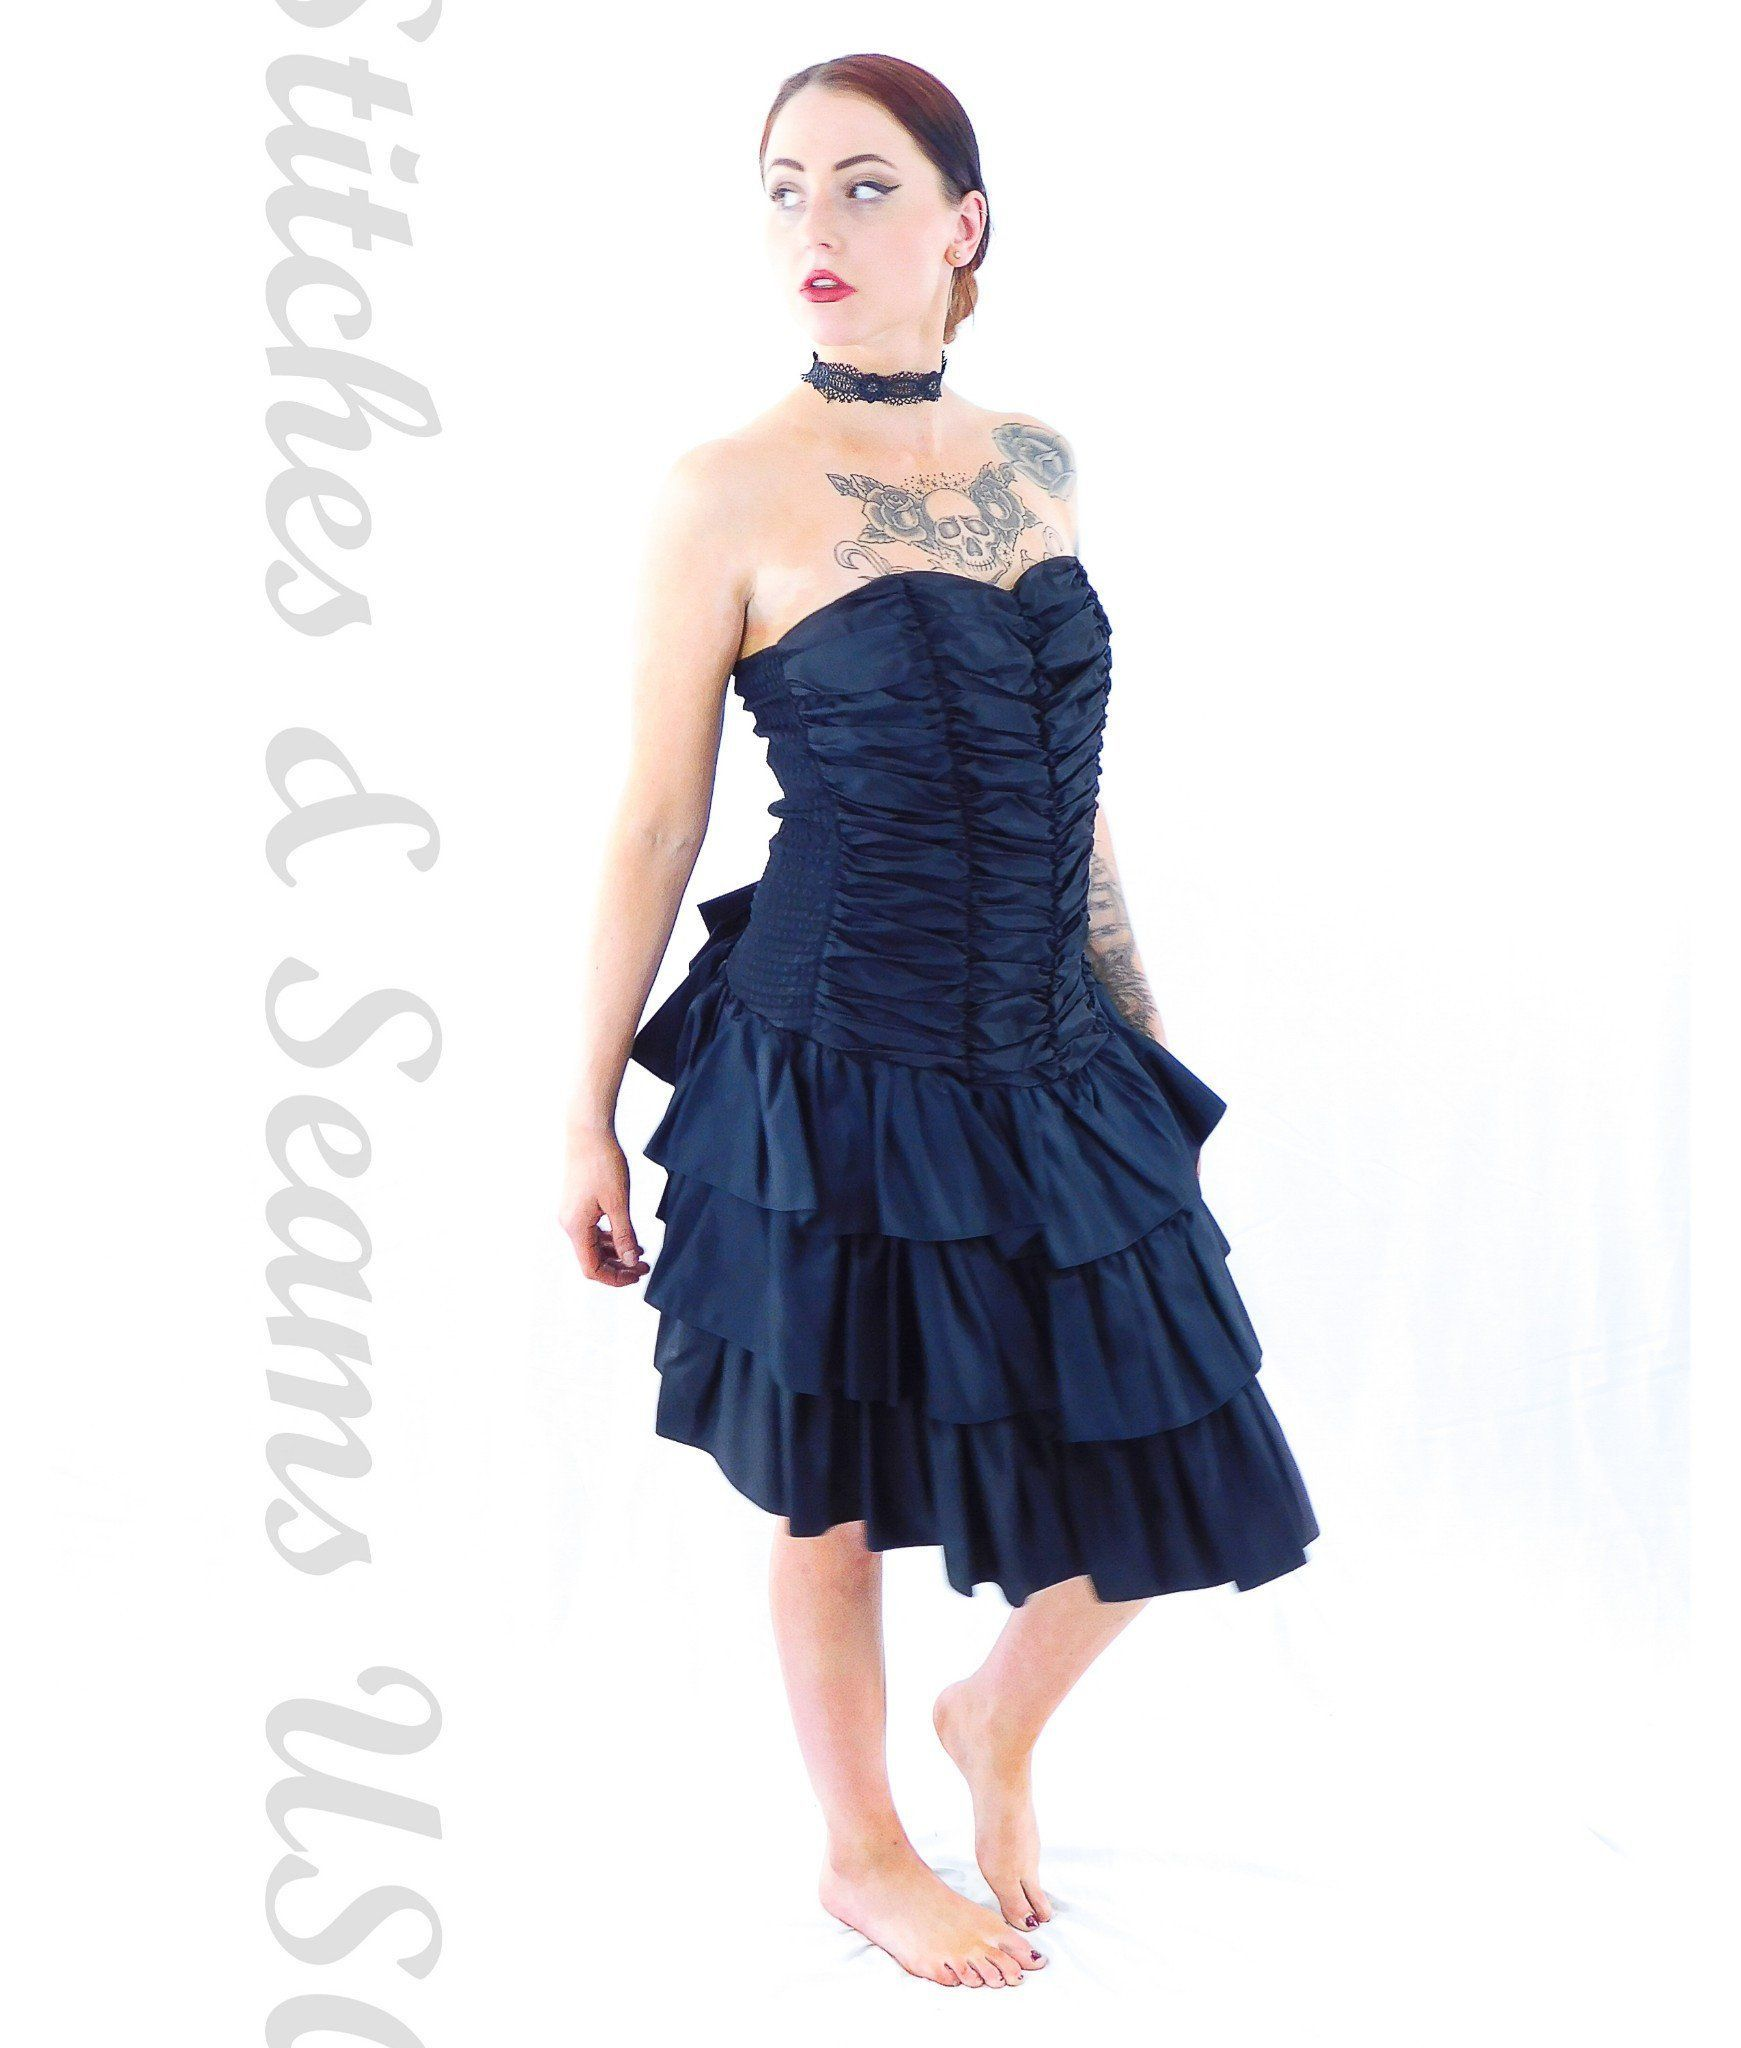 Positively elllyn formal dress pitch black gothic womens costume